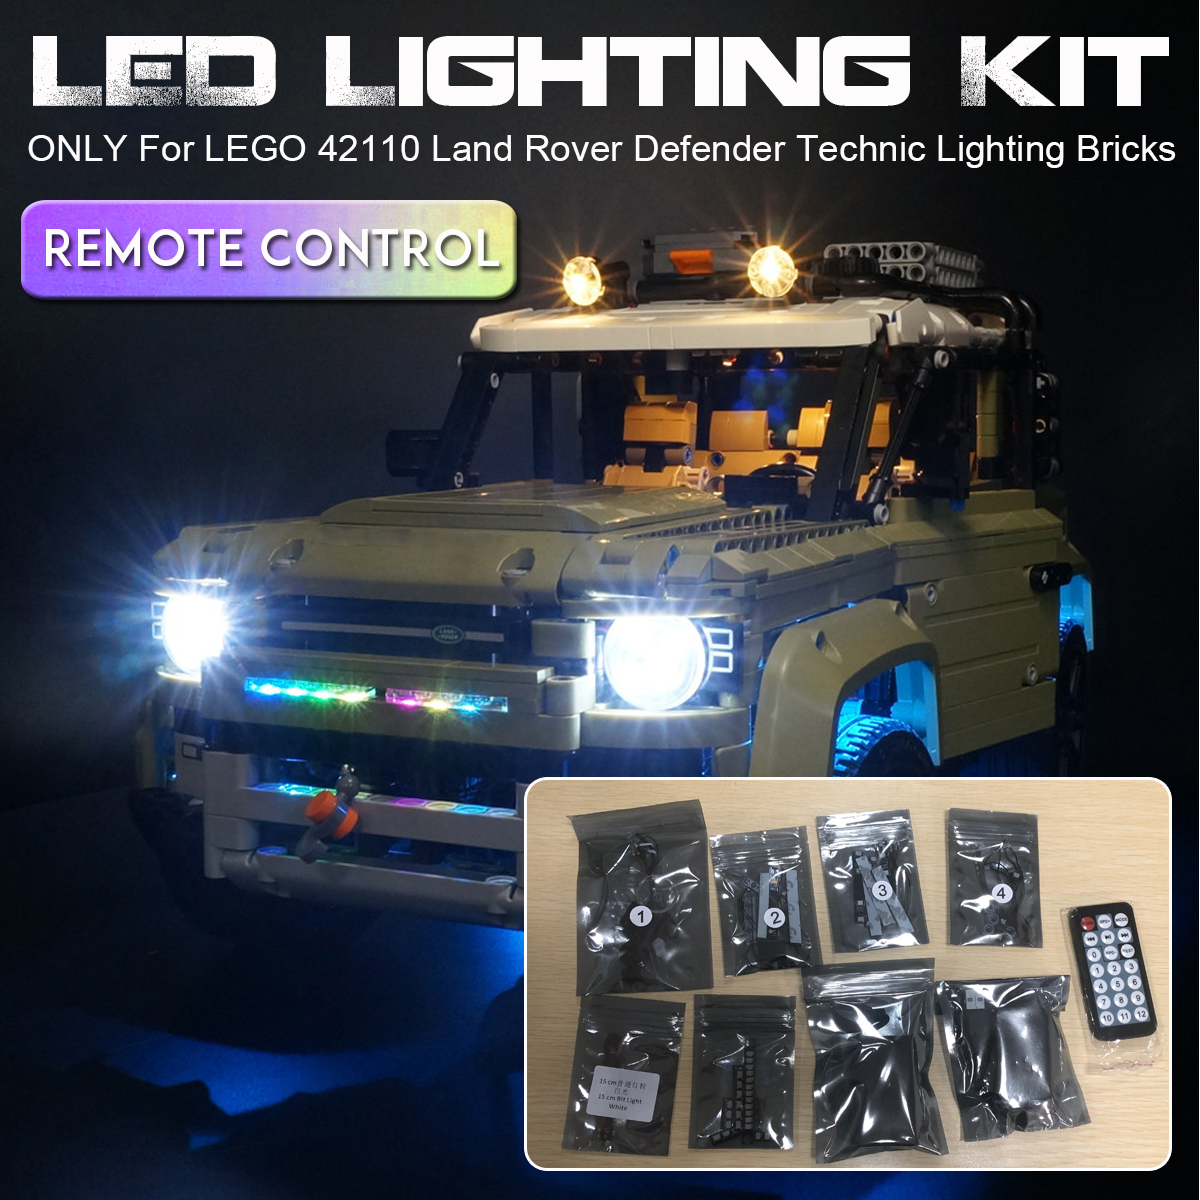 LED Light Lighting Kit ONLY For LEGO 42110 Technic Land Rover Defender Car Toys